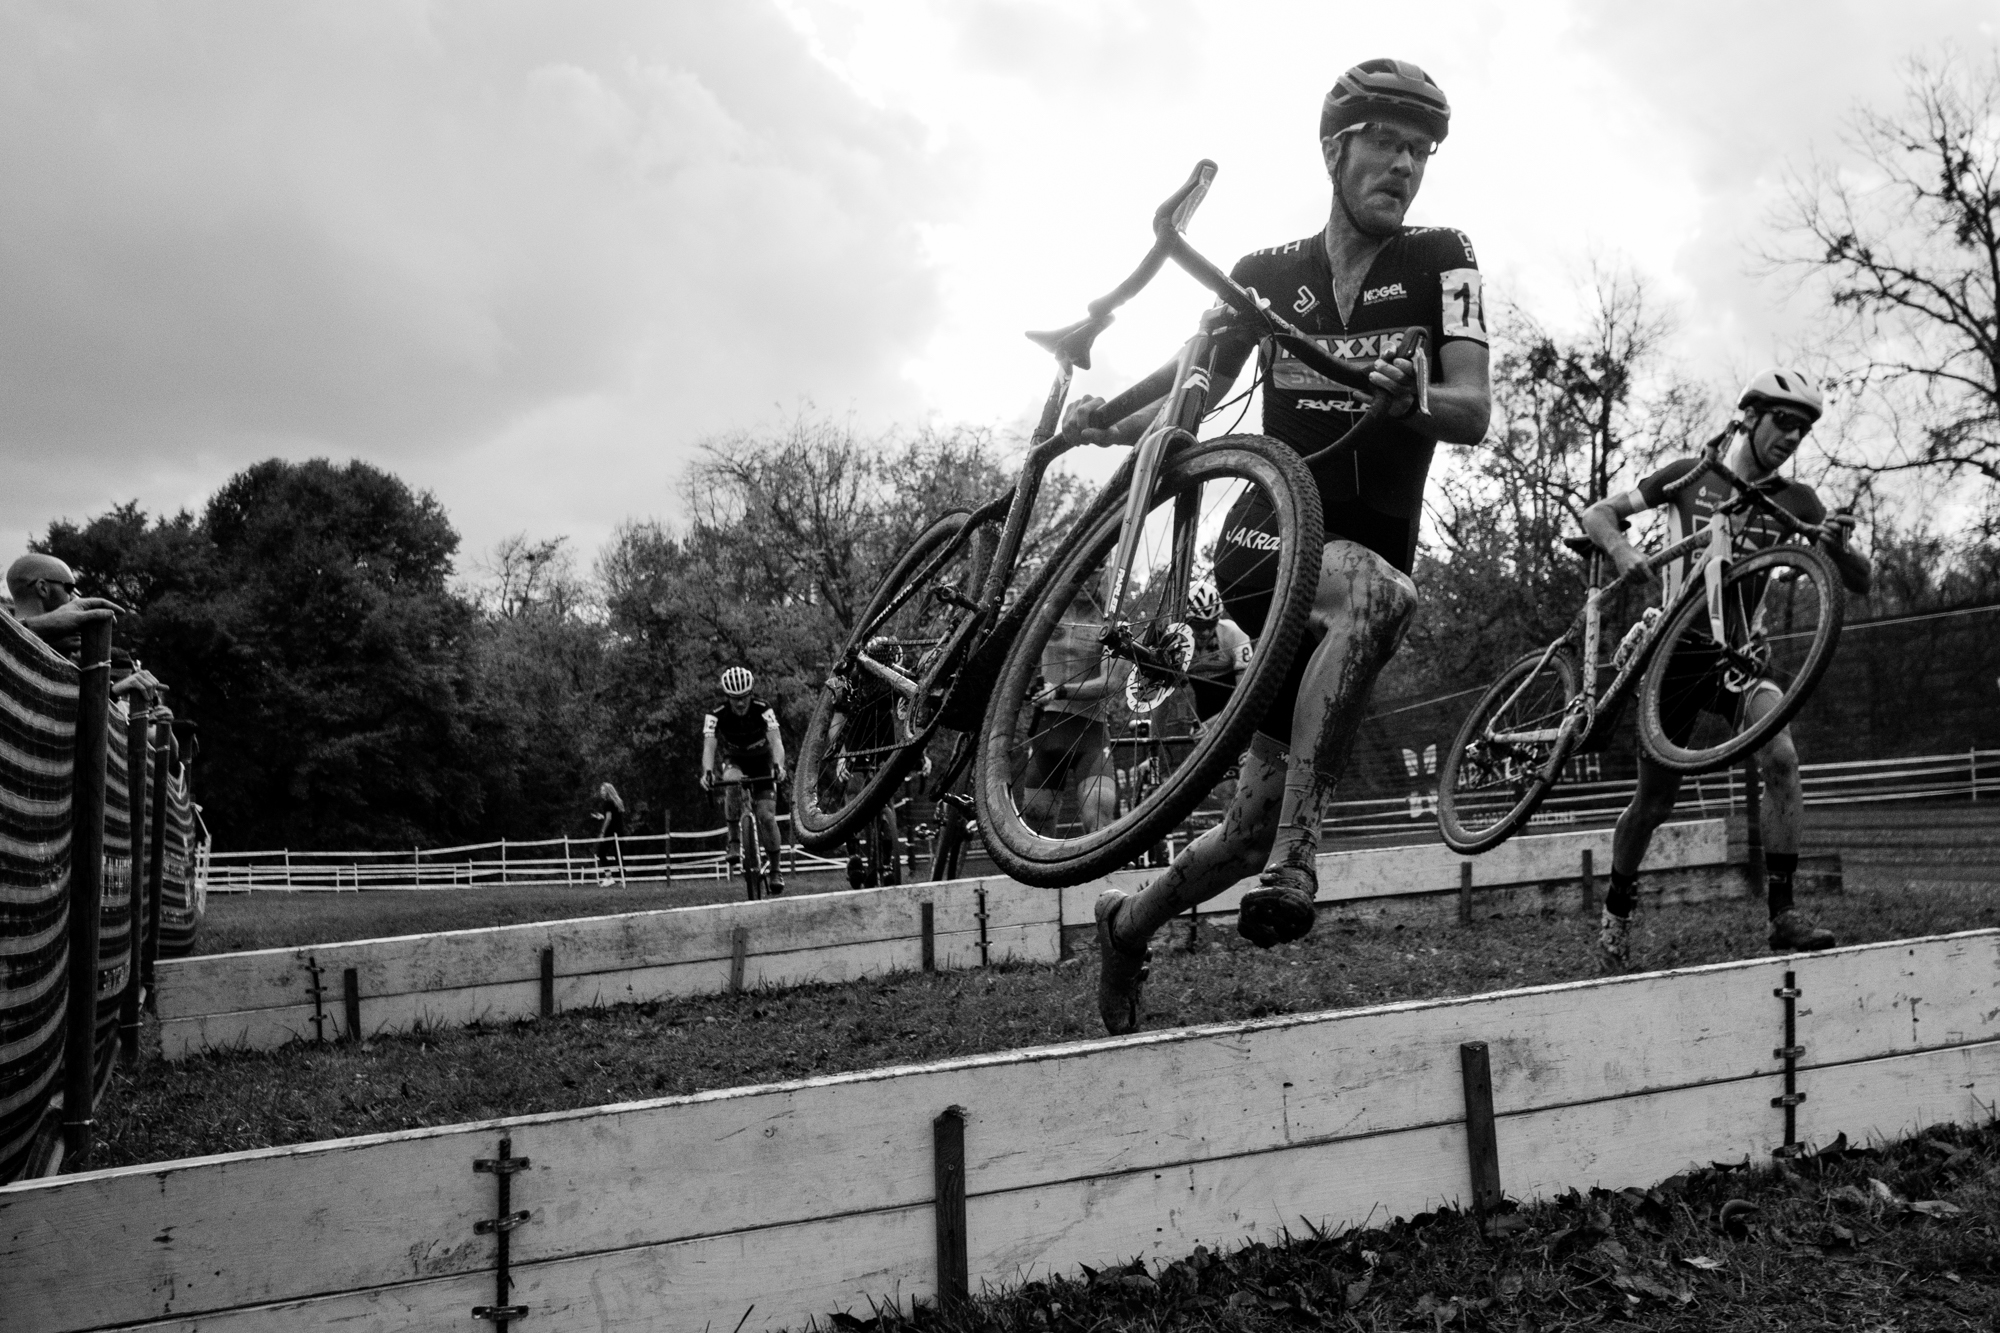 Travis Livermon at Women's field at Pan-American Cyclocross Championships